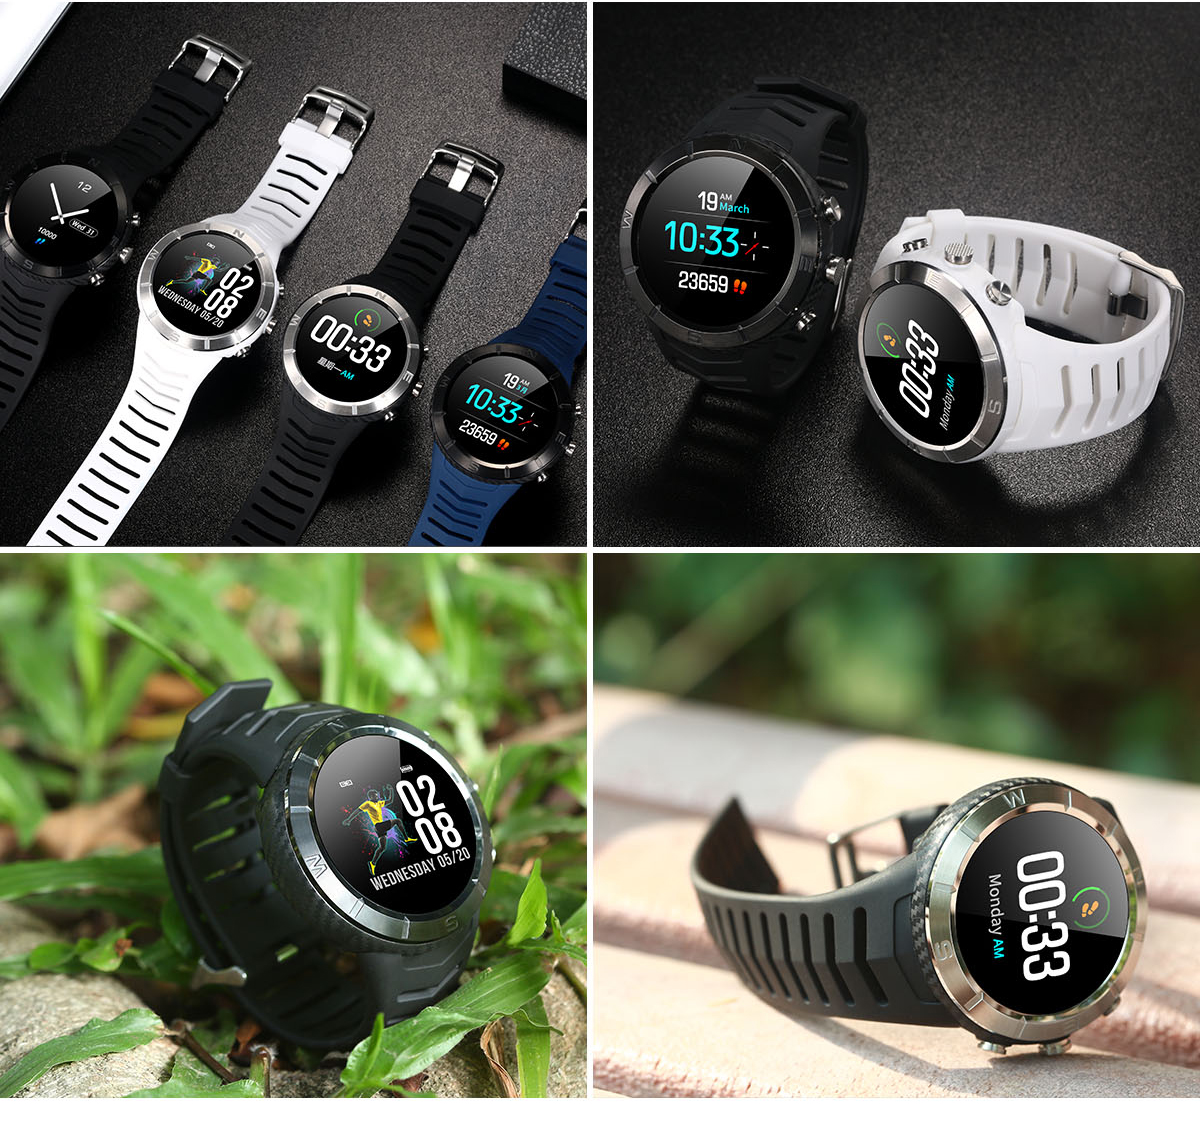 DT NO.1 DT08 Round Touch Wristband Compass HRV HR and Blood Pressure Monitor 20 days Standby Smart Watch